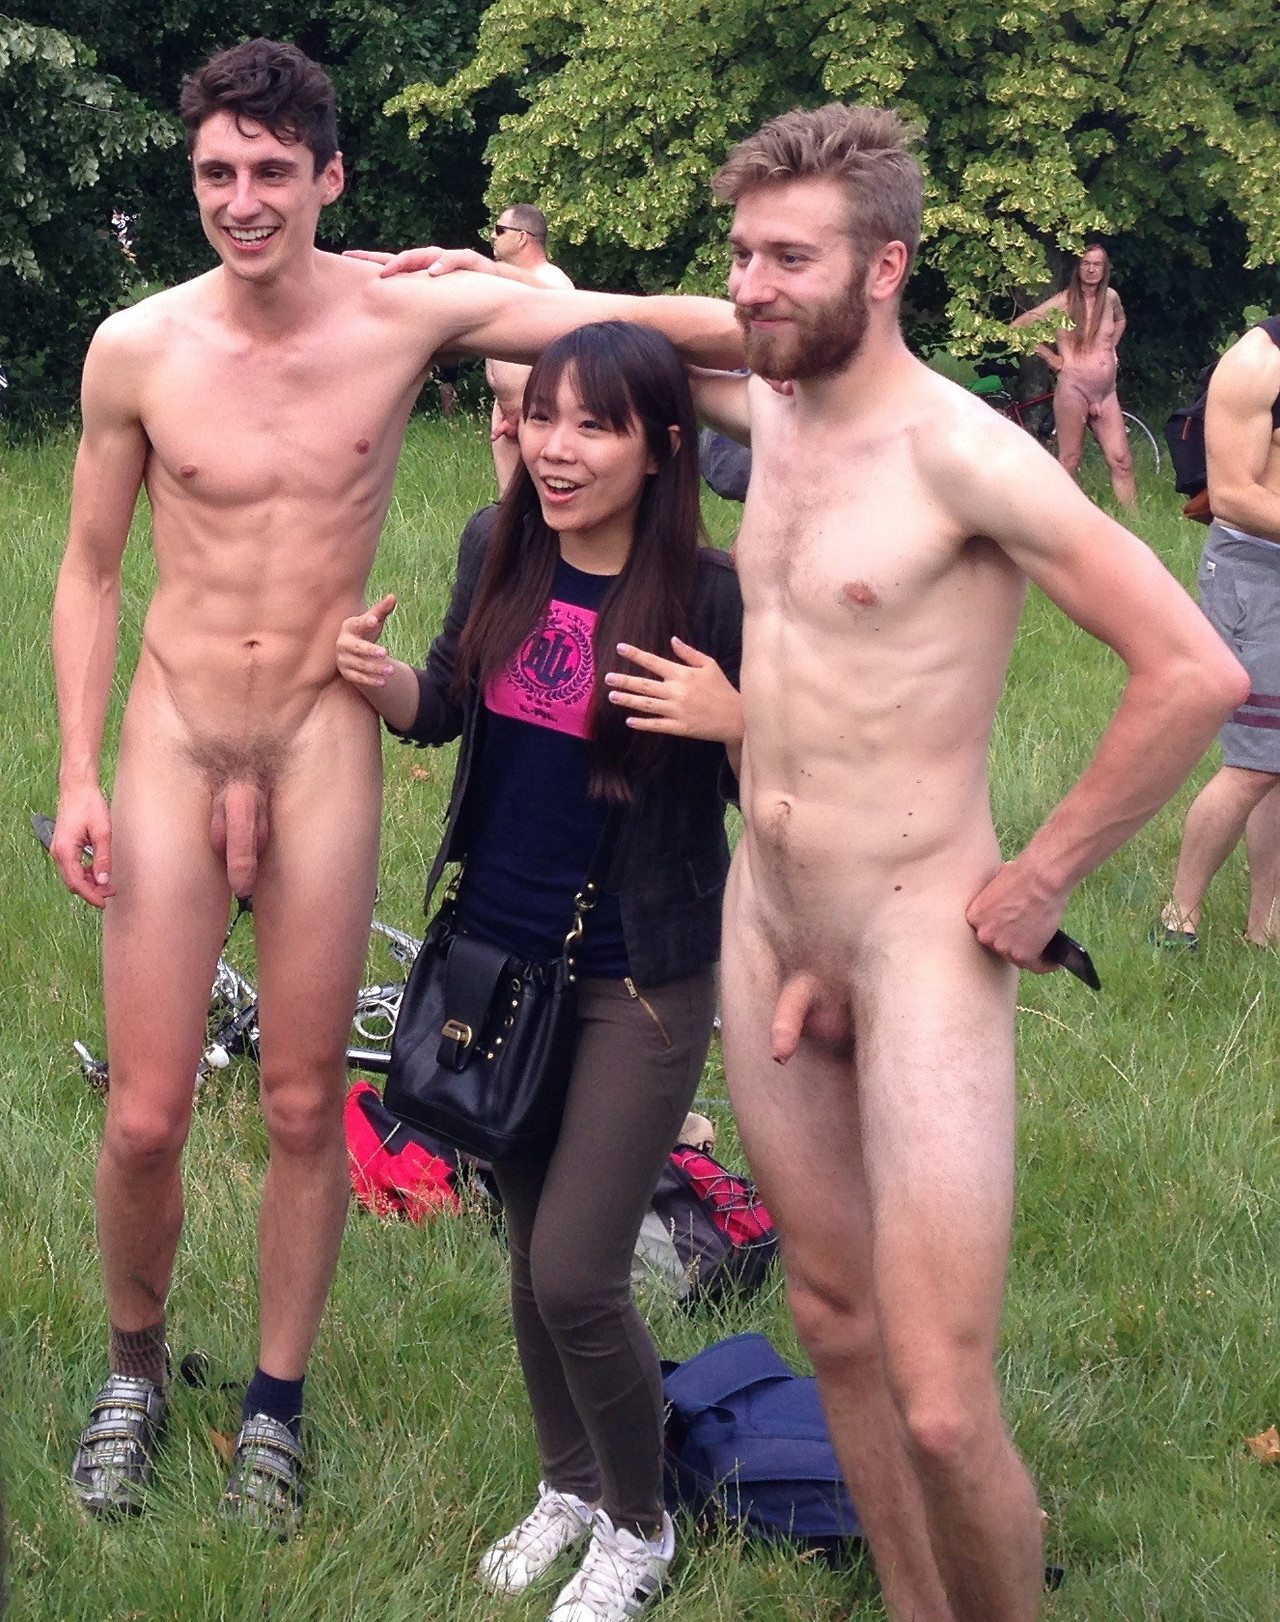 girl surprised by dick in public